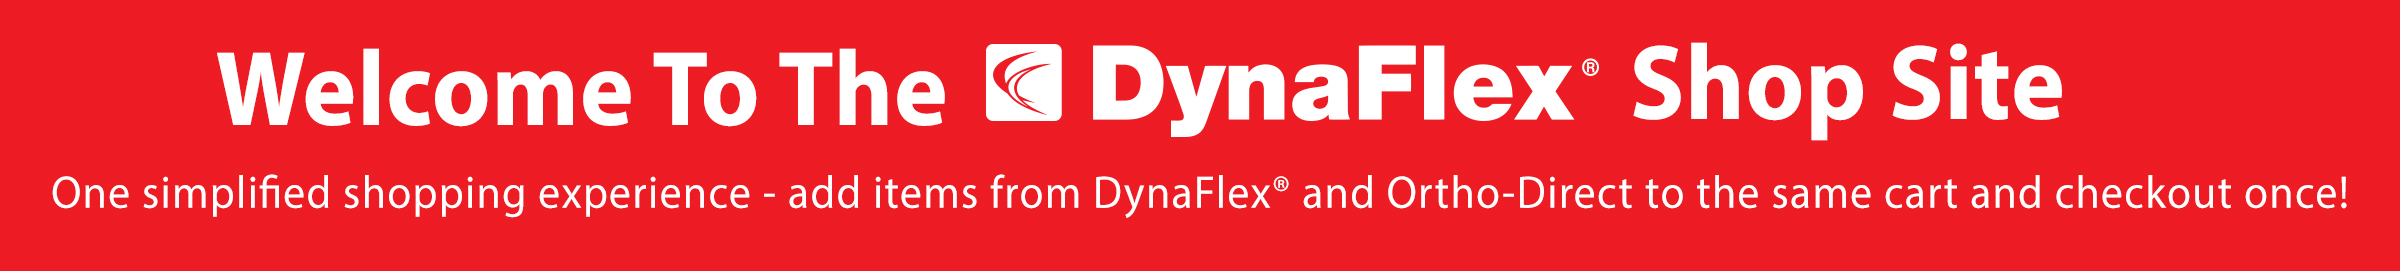 Welcome To the DynaFlex Shop Site